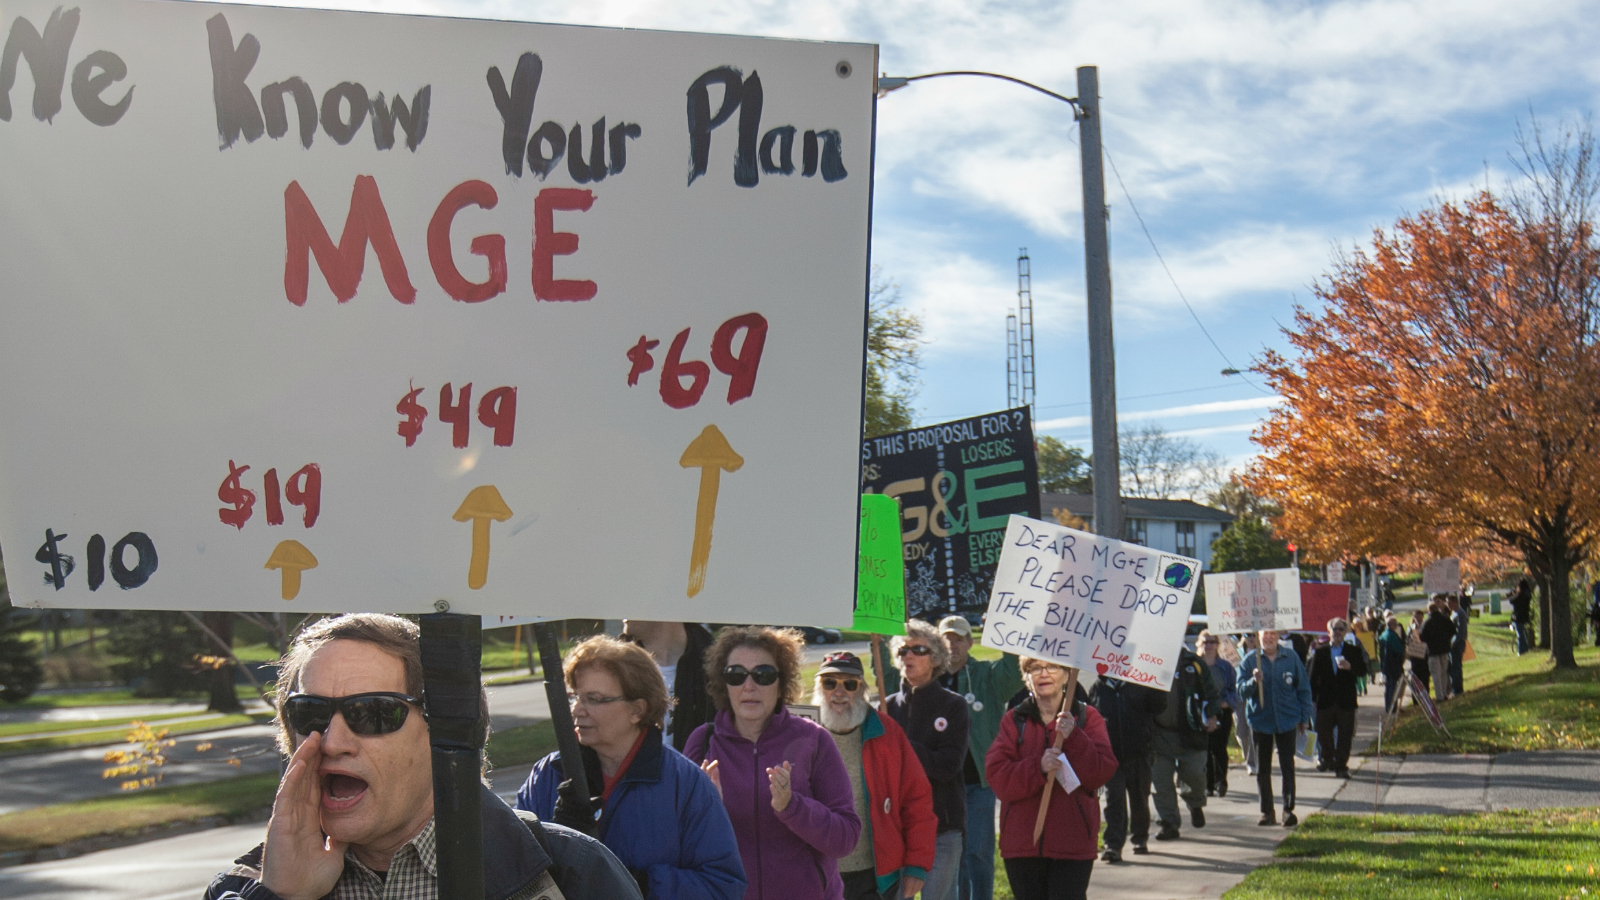 protest against MG&E rate hike